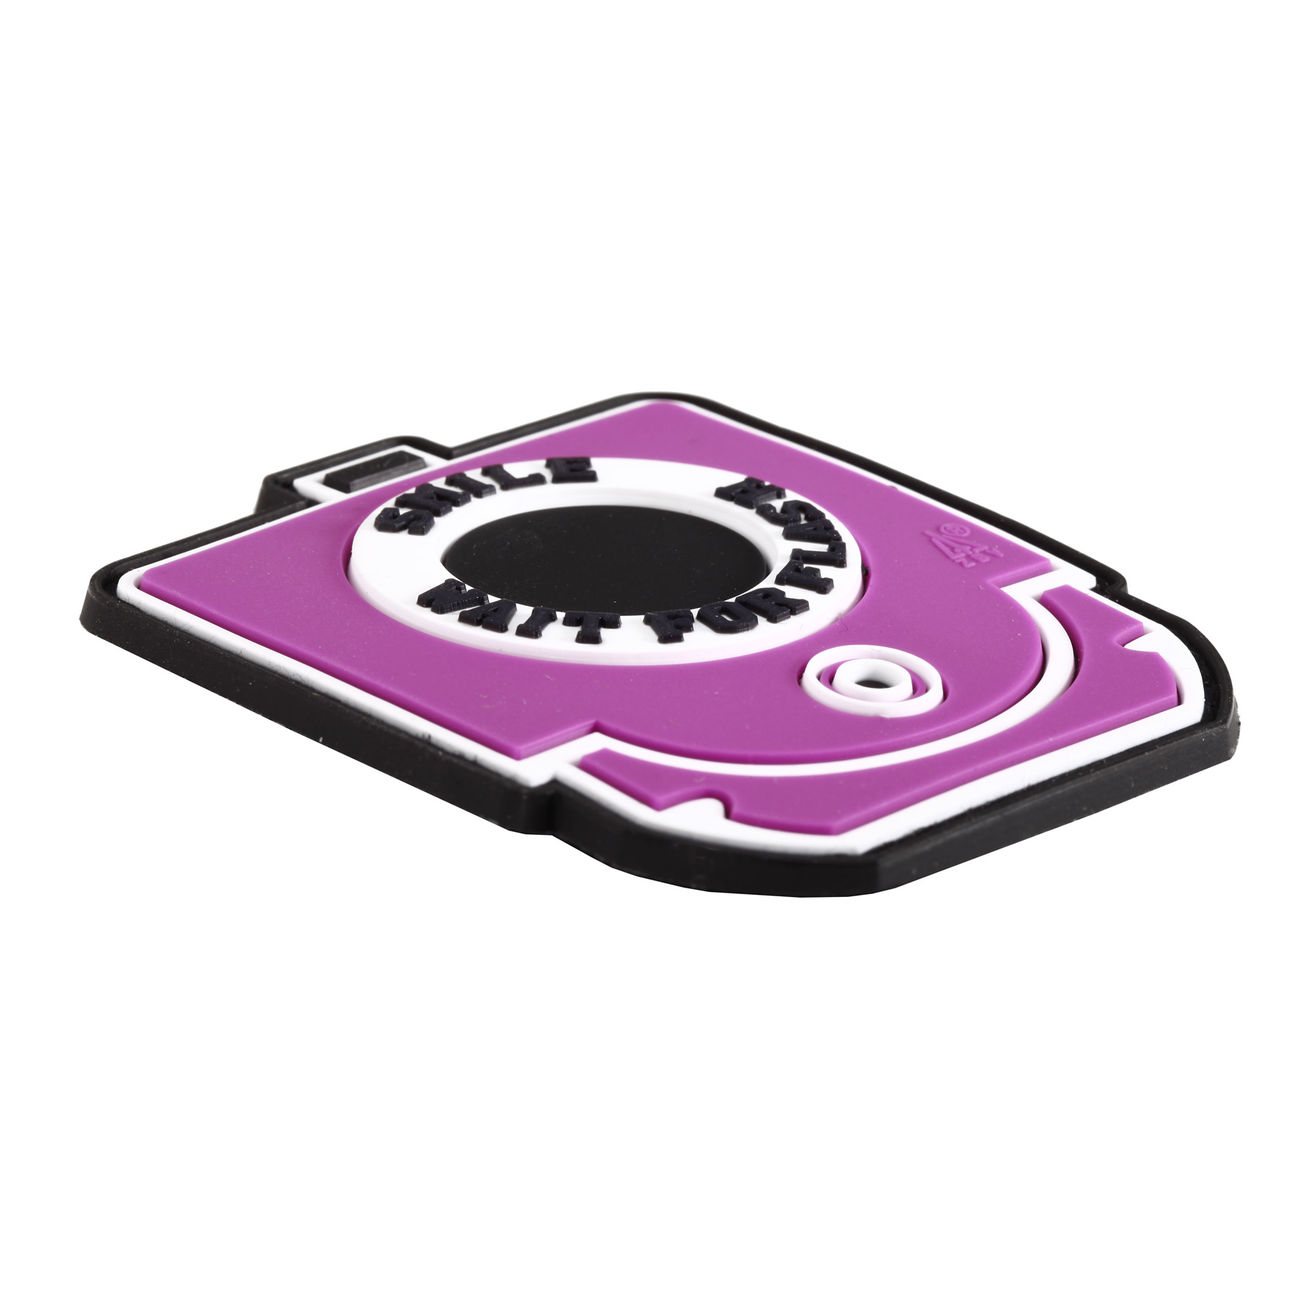 3D Rubber Patch Smile and Wait for Flash pink 1